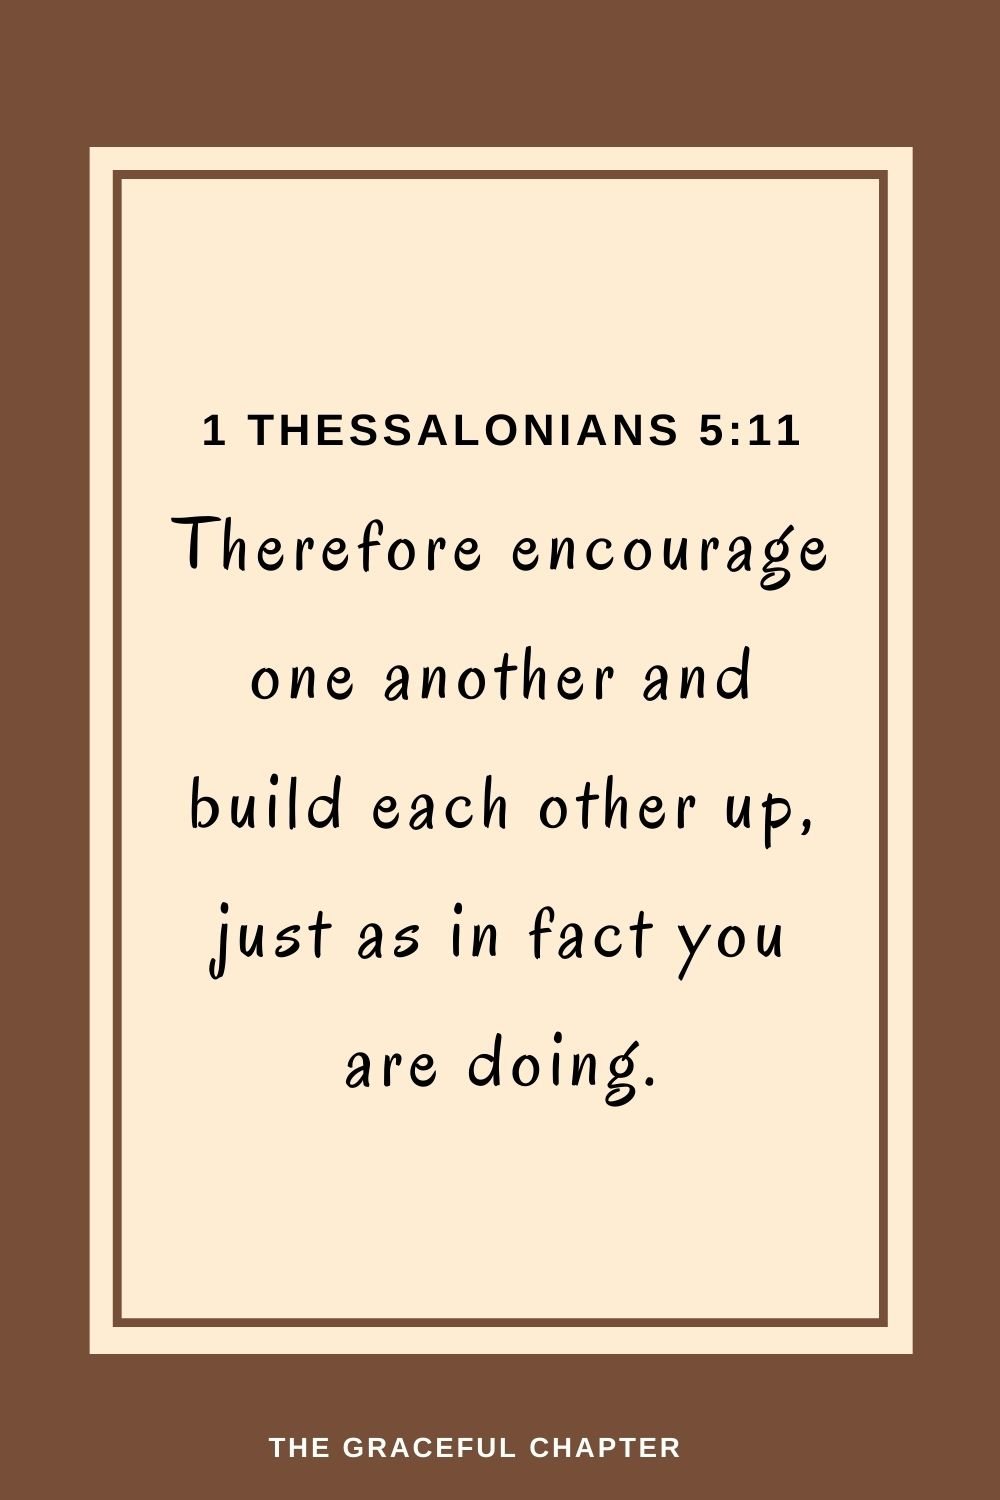 Therefore encourage one anotherand build each other up,just as in fact you are doing. 1 Thessalonians 5:11